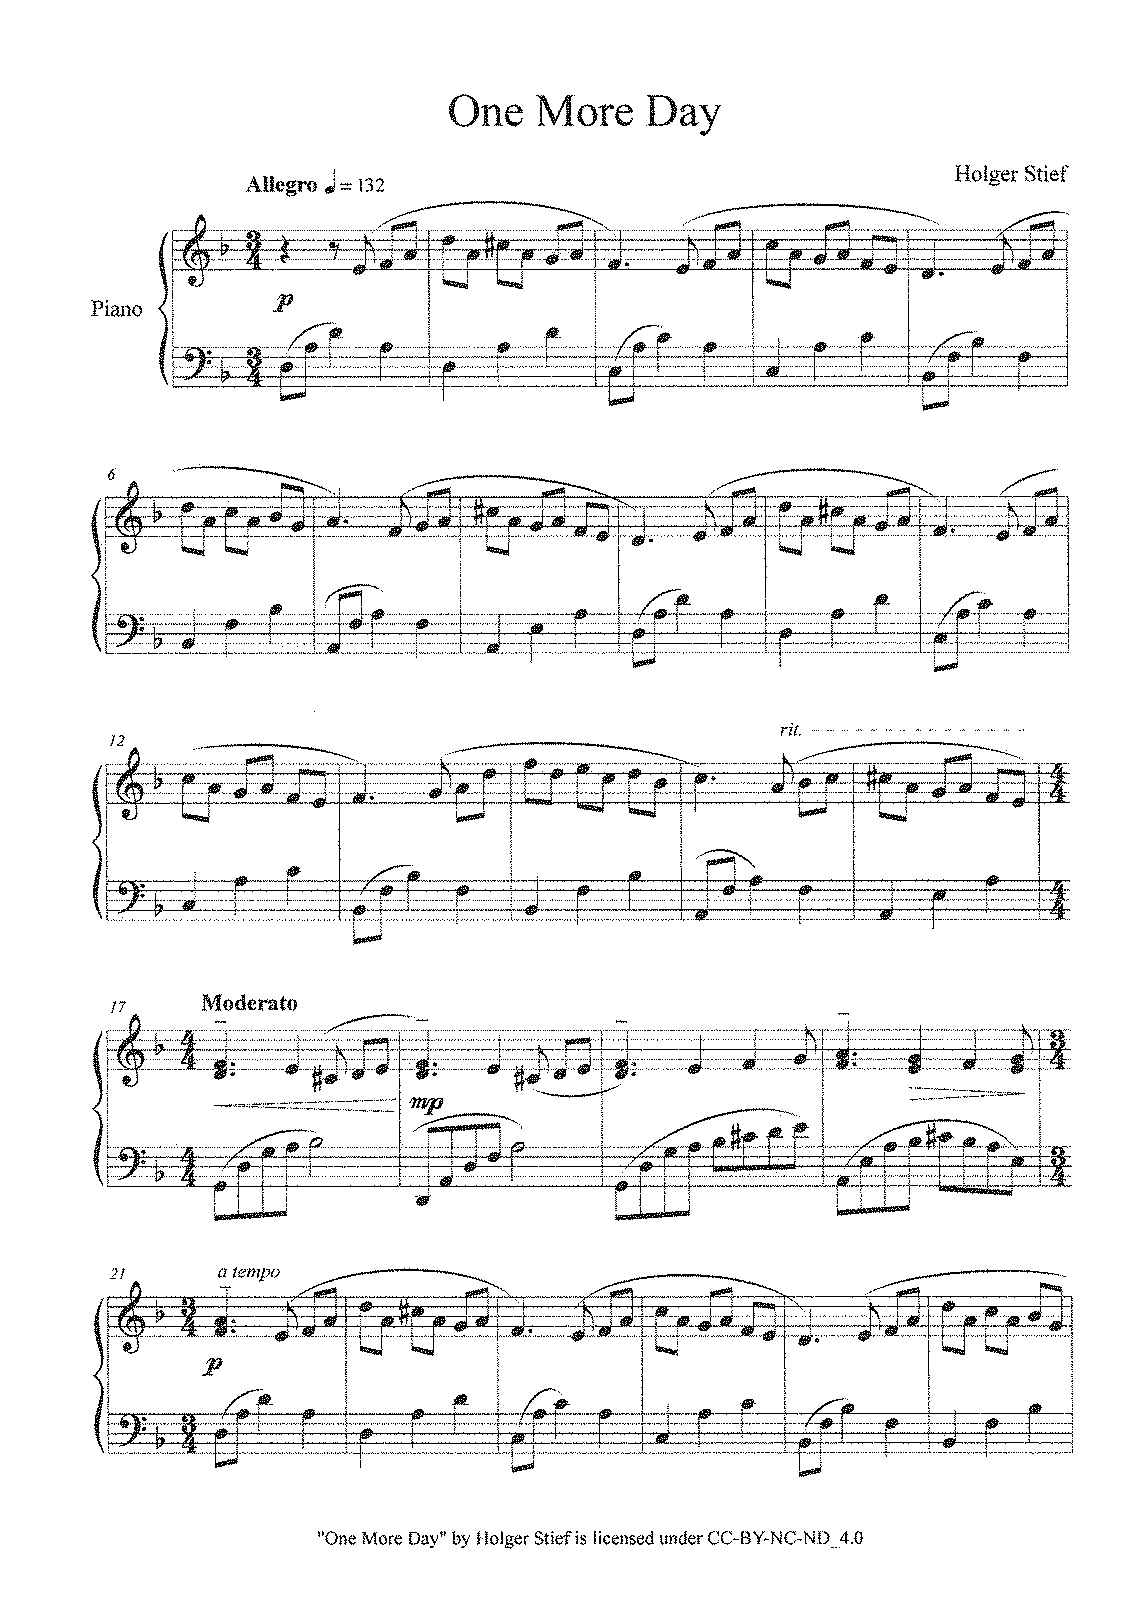 PMLP513659-Holger Stief - One More Day (Full Score).pdf